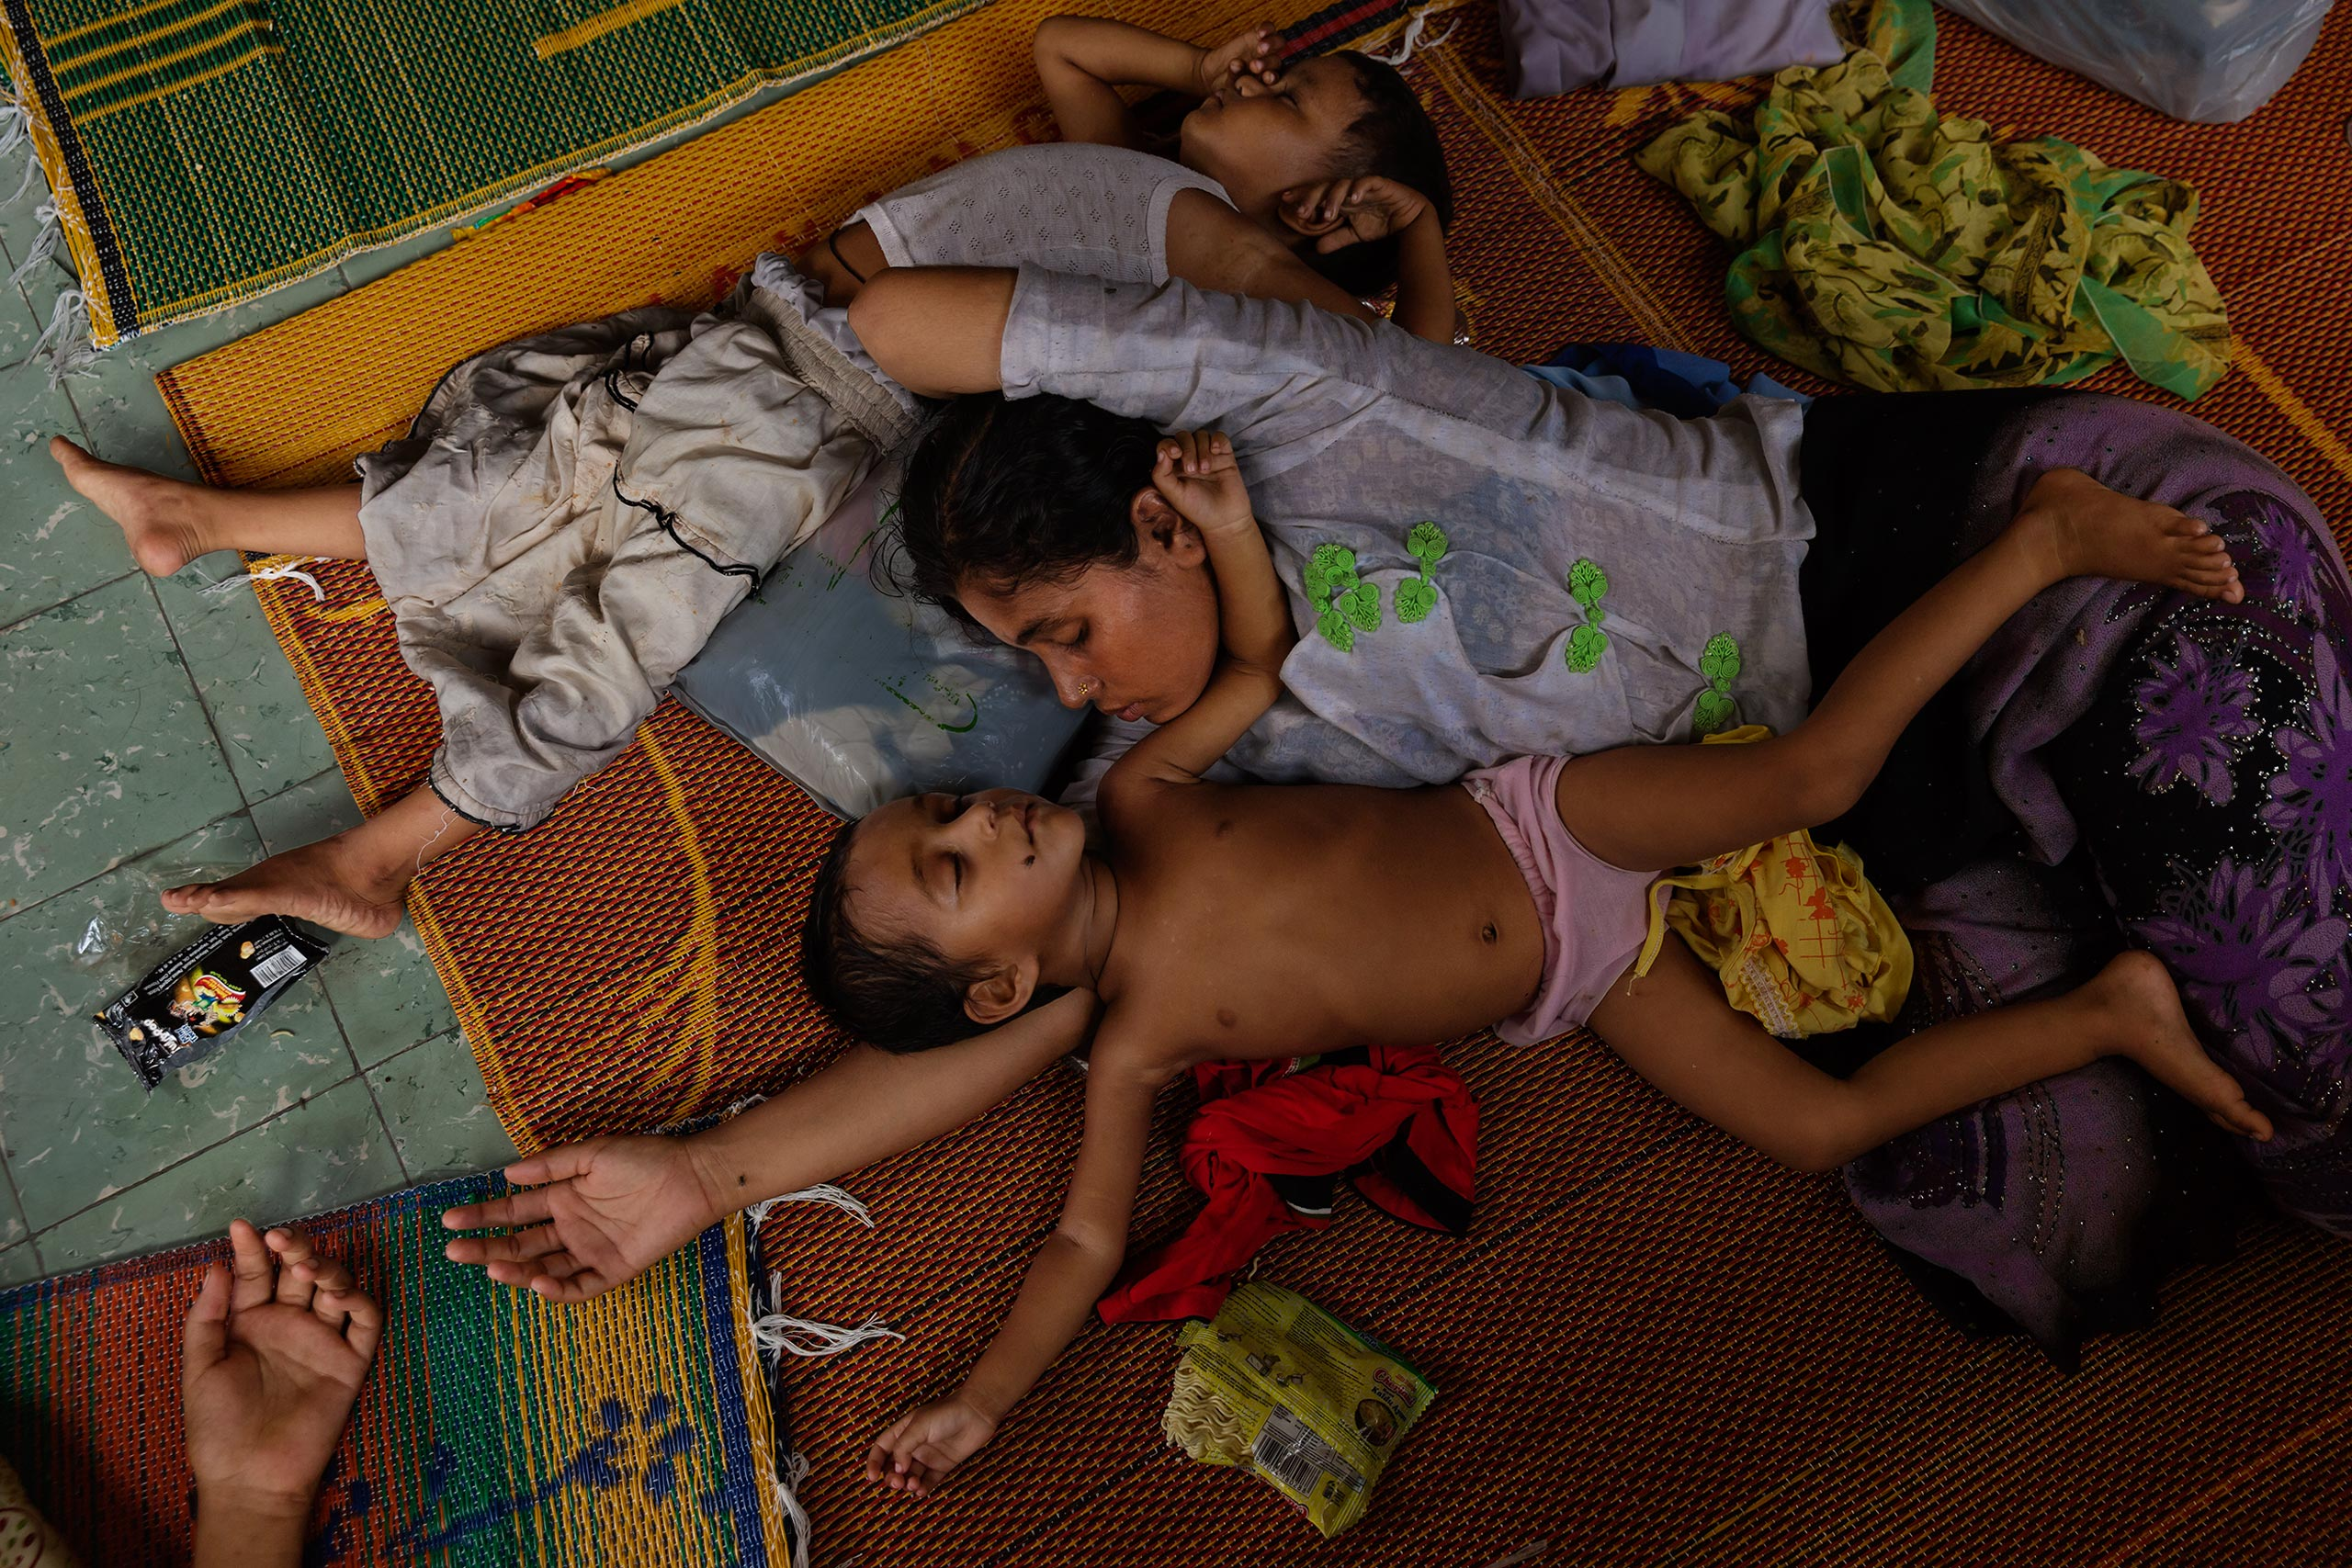 Children rest at a refugee camp in Bayeun, outside of Langsa, Indonesia, May 20. They were among the 25,000-plus Rohingya Muslim migrants who have fled reported persecution in Burma and Bangladesh this year by crossing the Indian Ocean in search of refugee status in Indonesia and Malaysia.